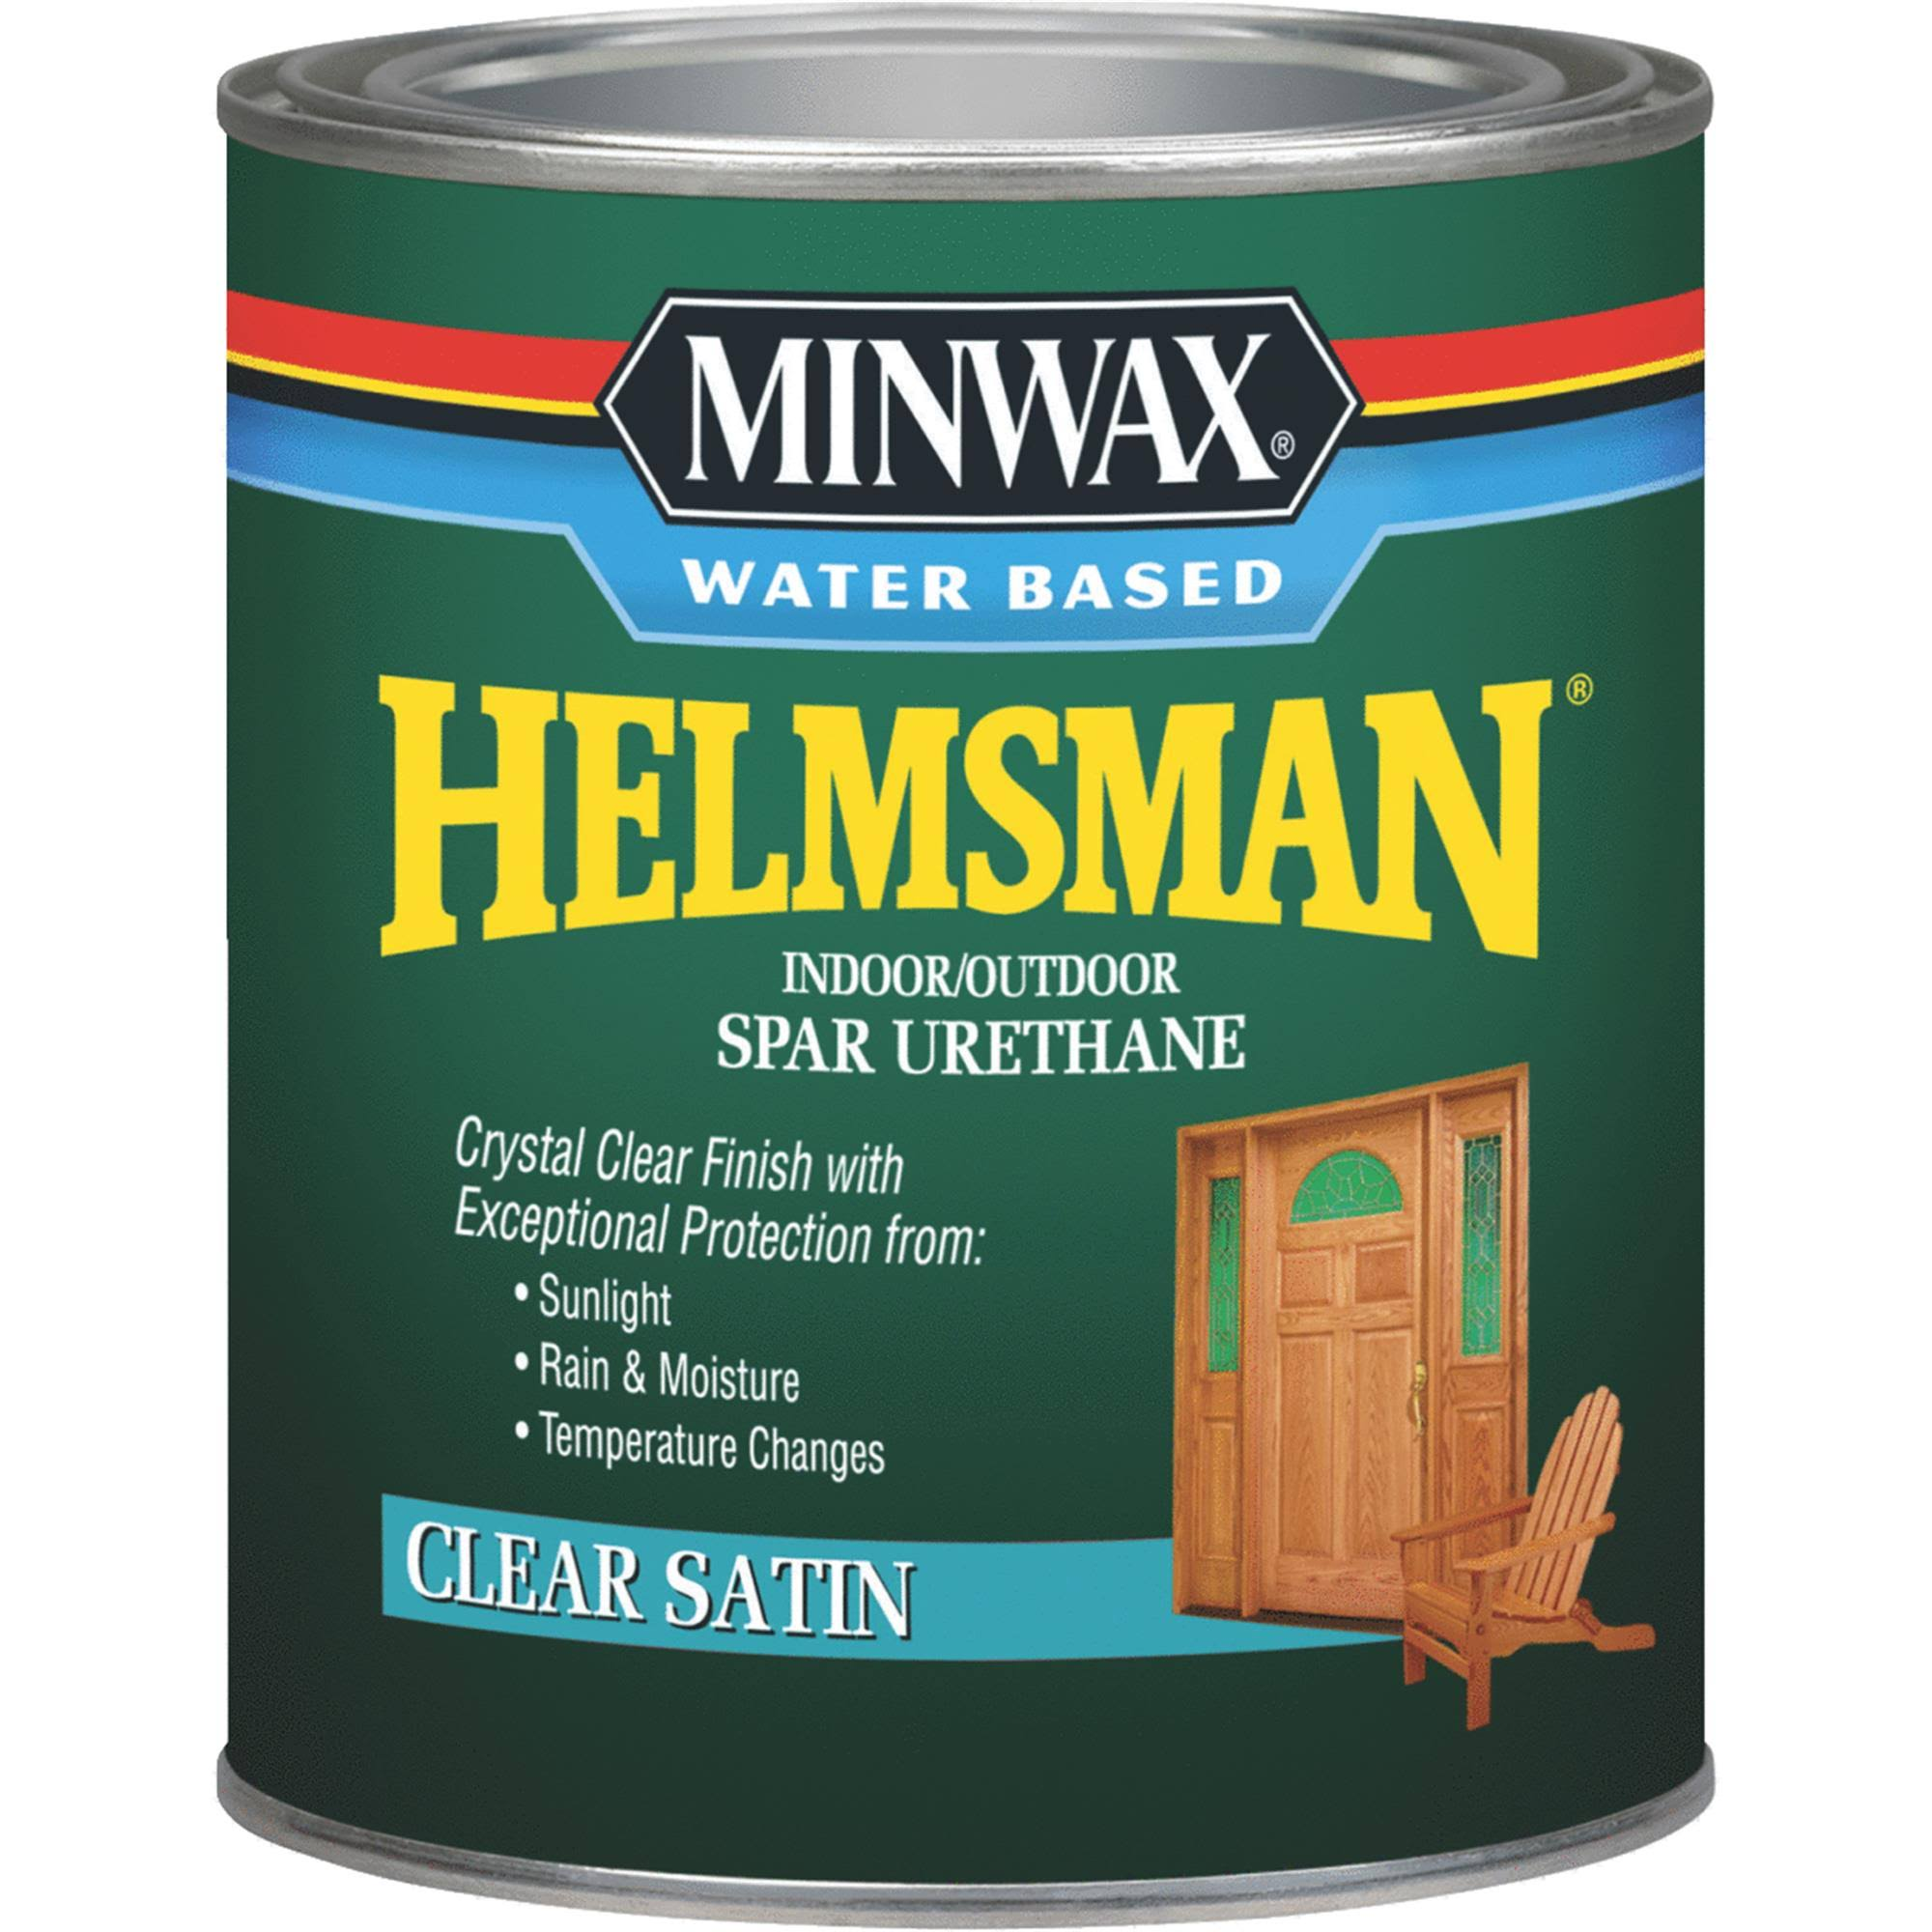 Minwax Water Based Helmsman Indoor/Outdoor Spar Urethane